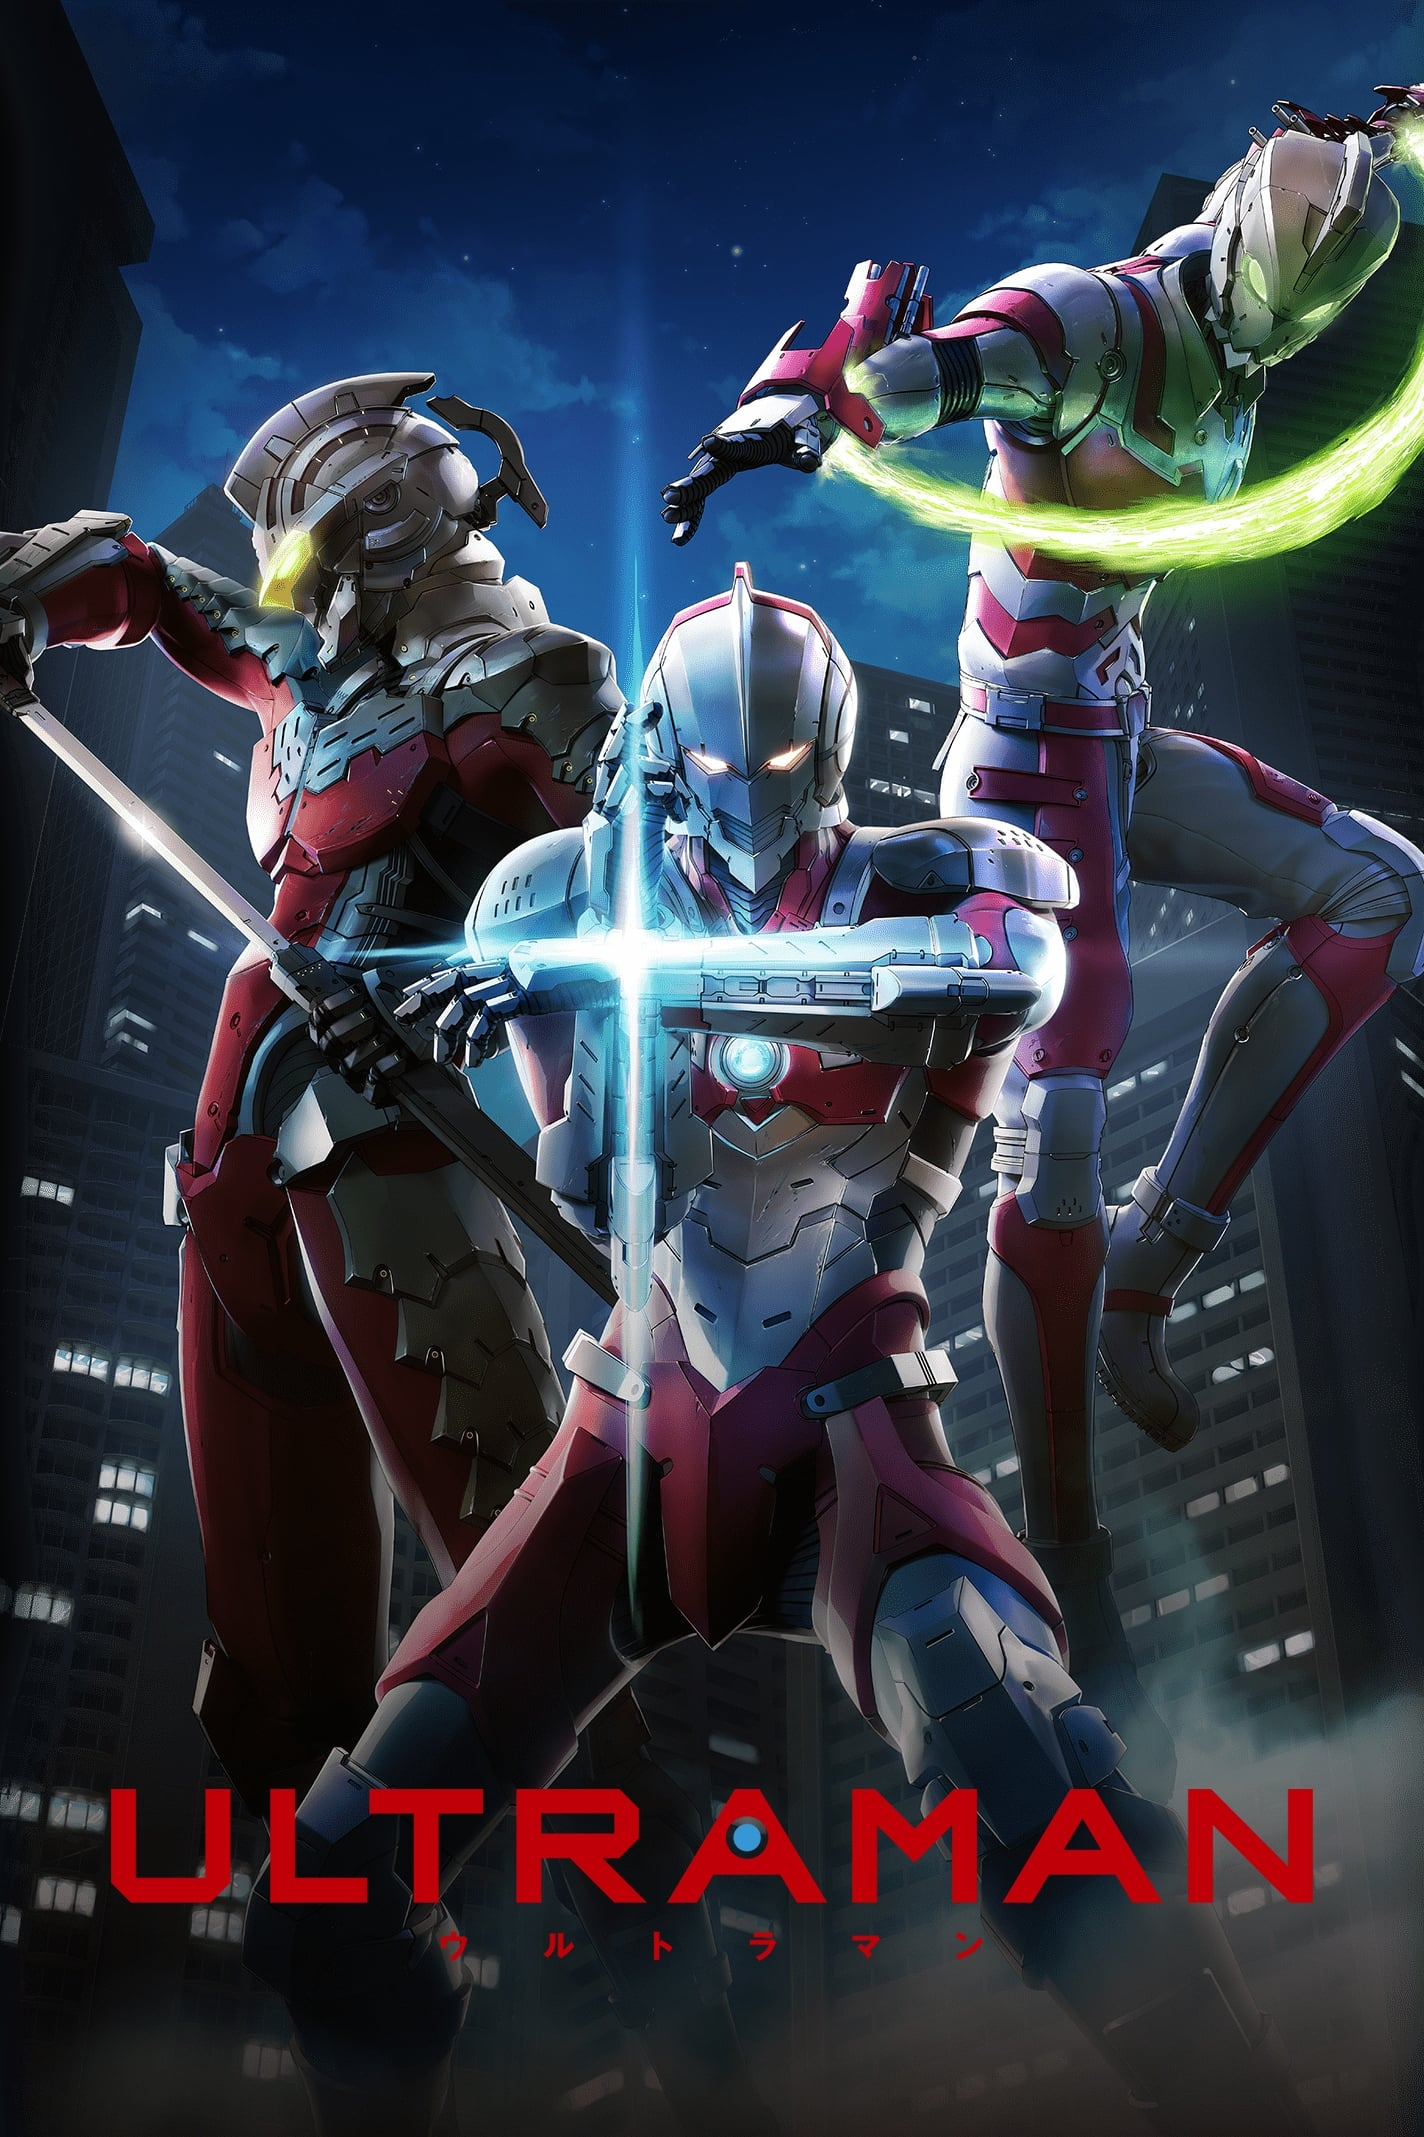 Ultraman S1 (2019) Subtitle Indonesia